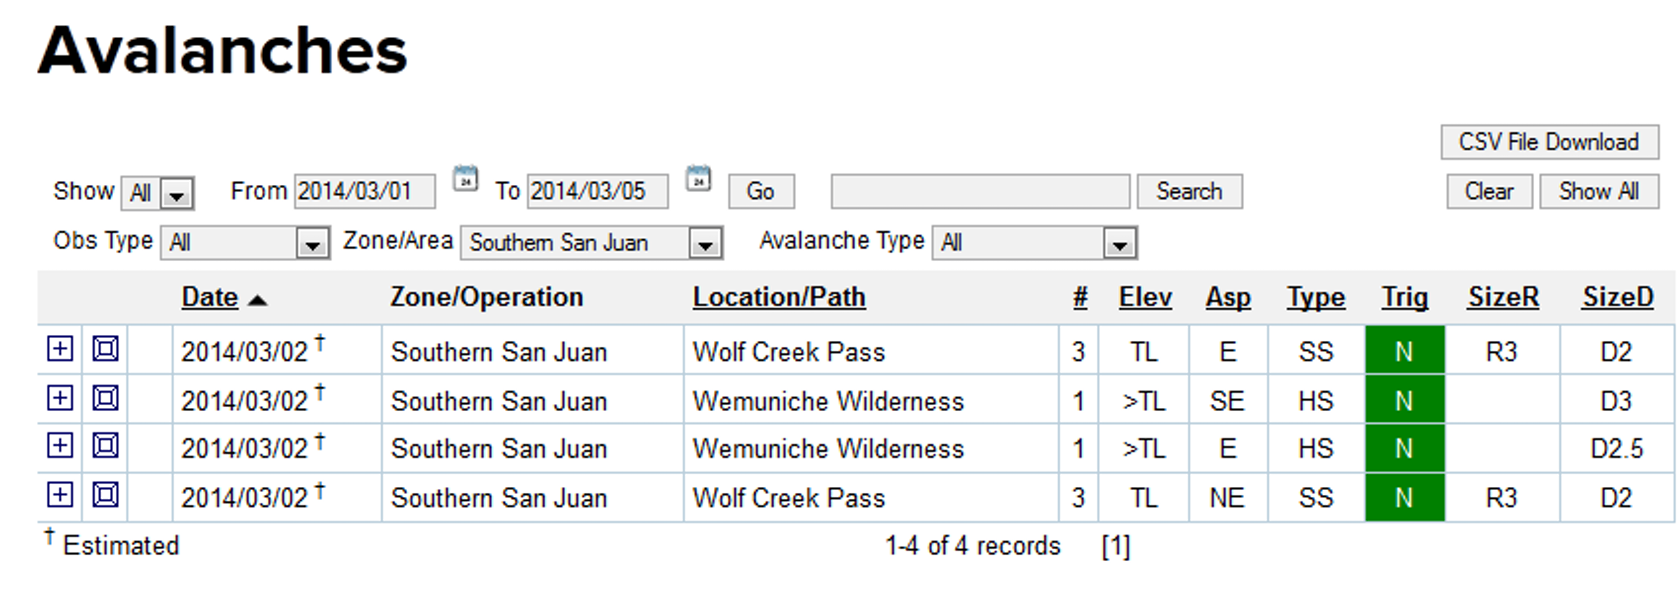 <b>Figure 12:</b> Avalanche occurrence recorded in the CAIC's database in the days leading up to the accident. (<a href=javascript:void(0); onClick=win=window.open('https://caic-production.imgix.net/j96gi5qvp2bln4zuktexkupxk8bm?ixlib=php-3.1.0&s=b1e48187521ac571e4df49331f346c6c','caic_media','resizable=1,height=820,width=840,scrollbars=yes');win.focus();return false;>see full sized image</a>)